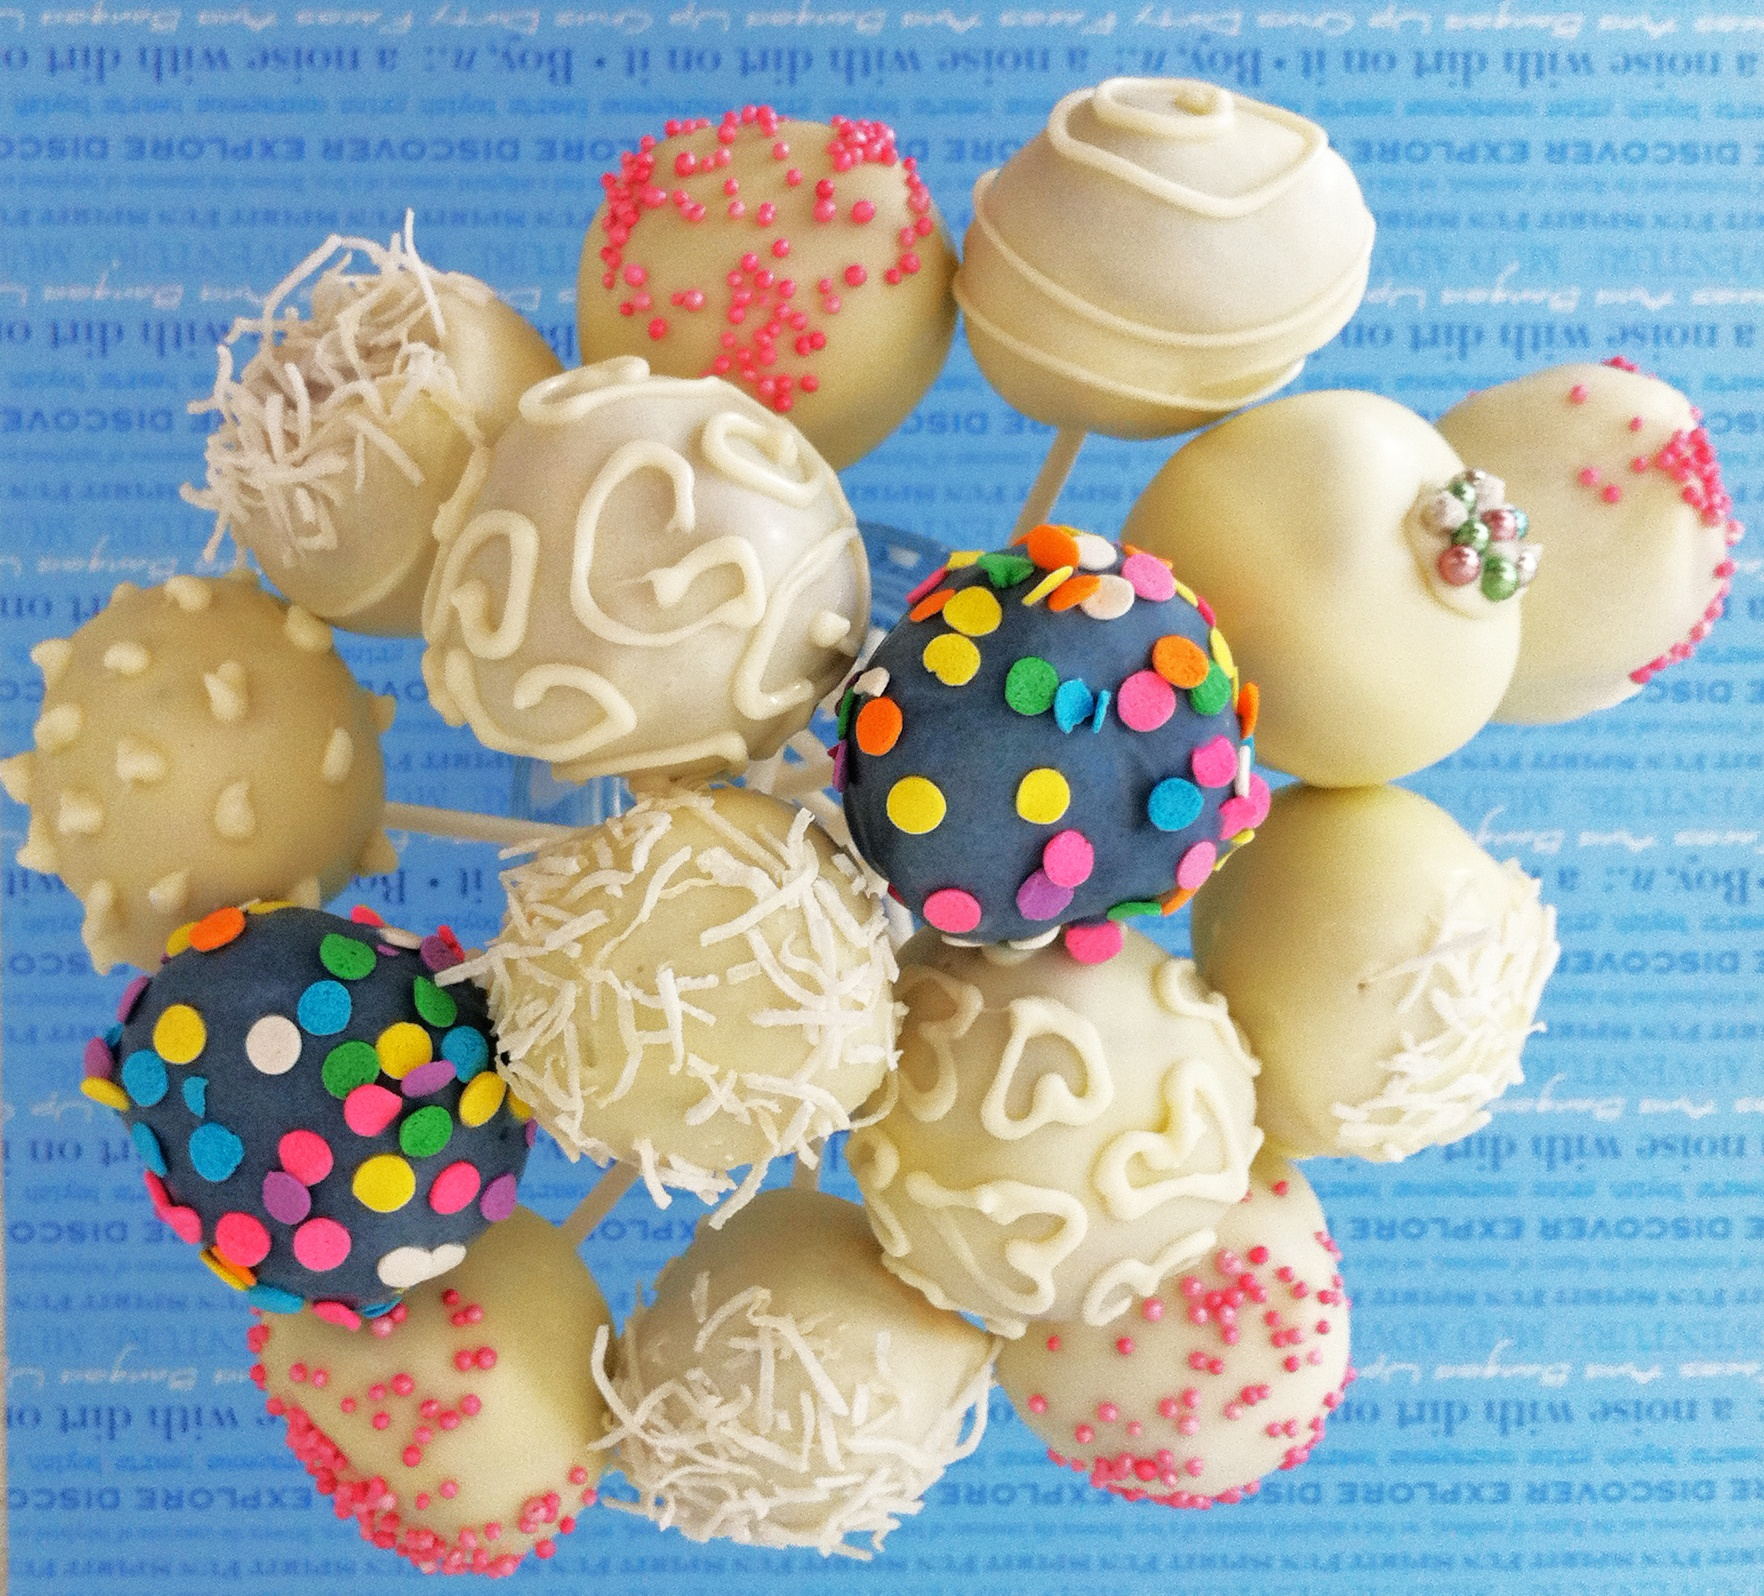 Chocolate Balls Cake Decoration : cake-pop-recipe-how-to-cook-that-ann-reardon-decorating.jpg